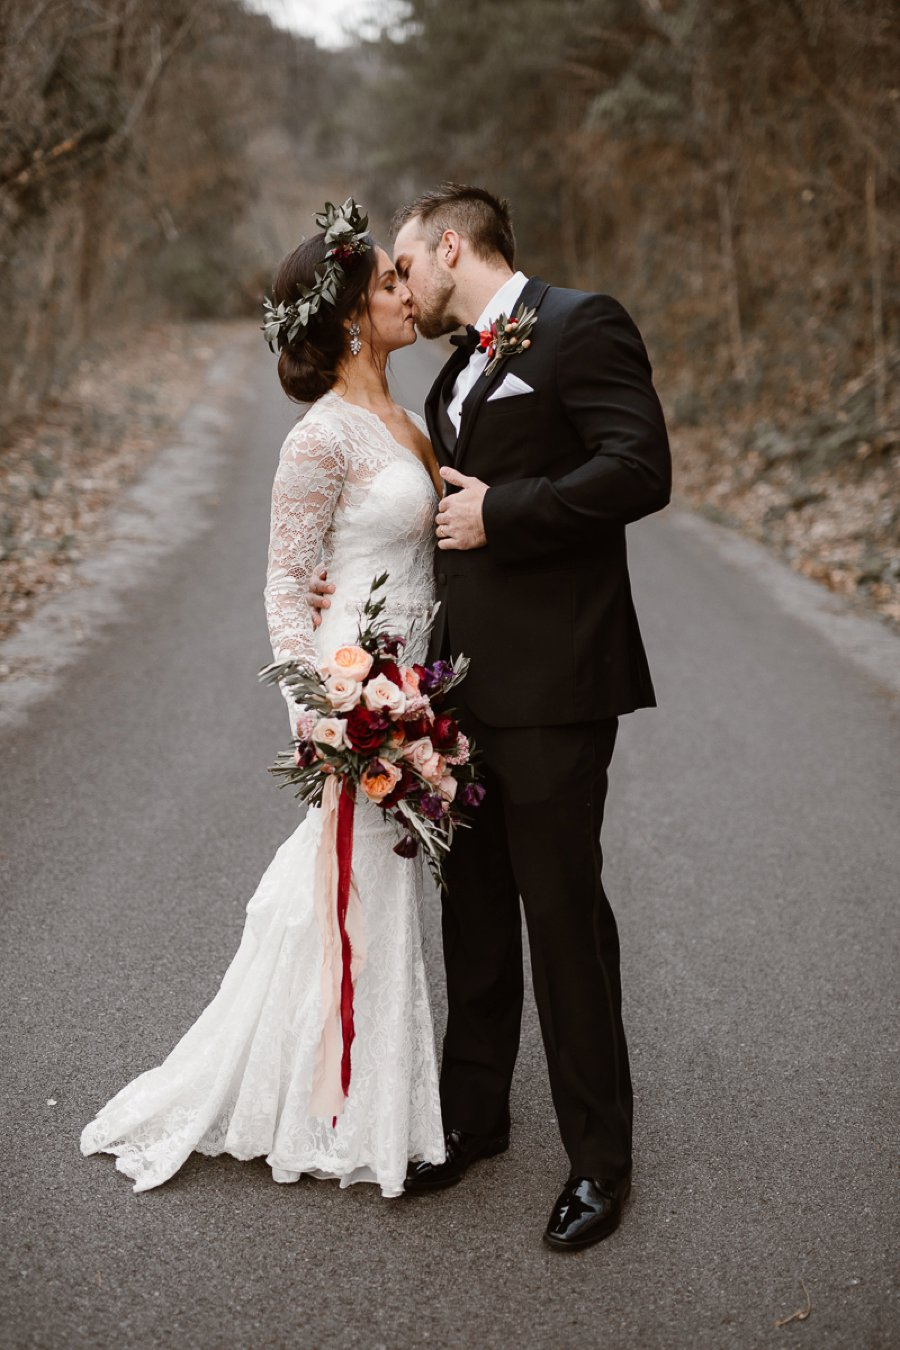 Red and White Rustic Wedding In Tennessee via TheELD.com